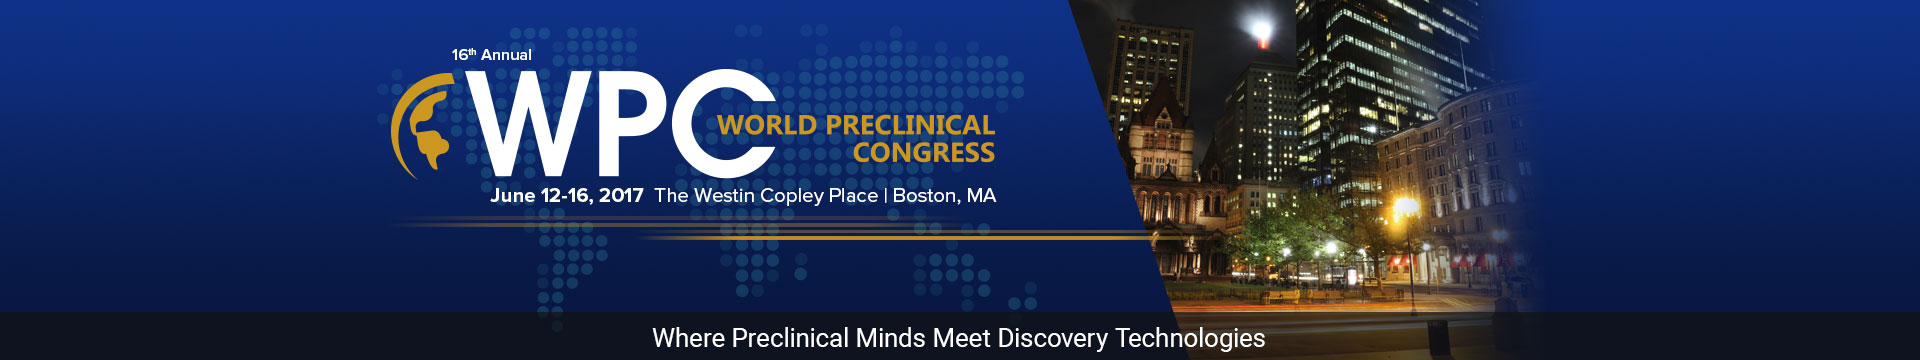 Image result for World preclinical congress 2017 annual meeting